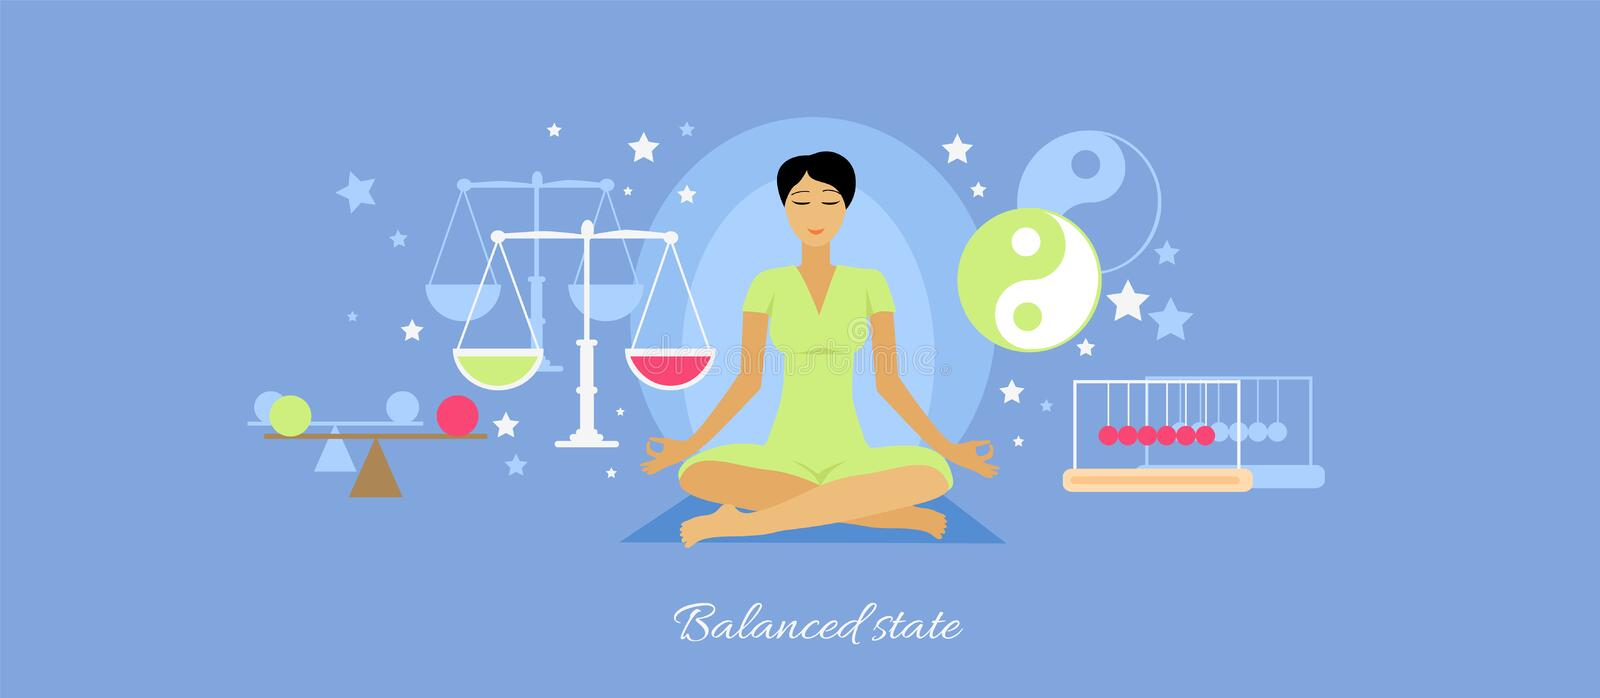 Balanced State Woman Icon Flat Isolated. Person meditation yoga, healthcare and mood, expression feeling mental, pose relax, thinking and harmony, lifestyle royalty free illustration